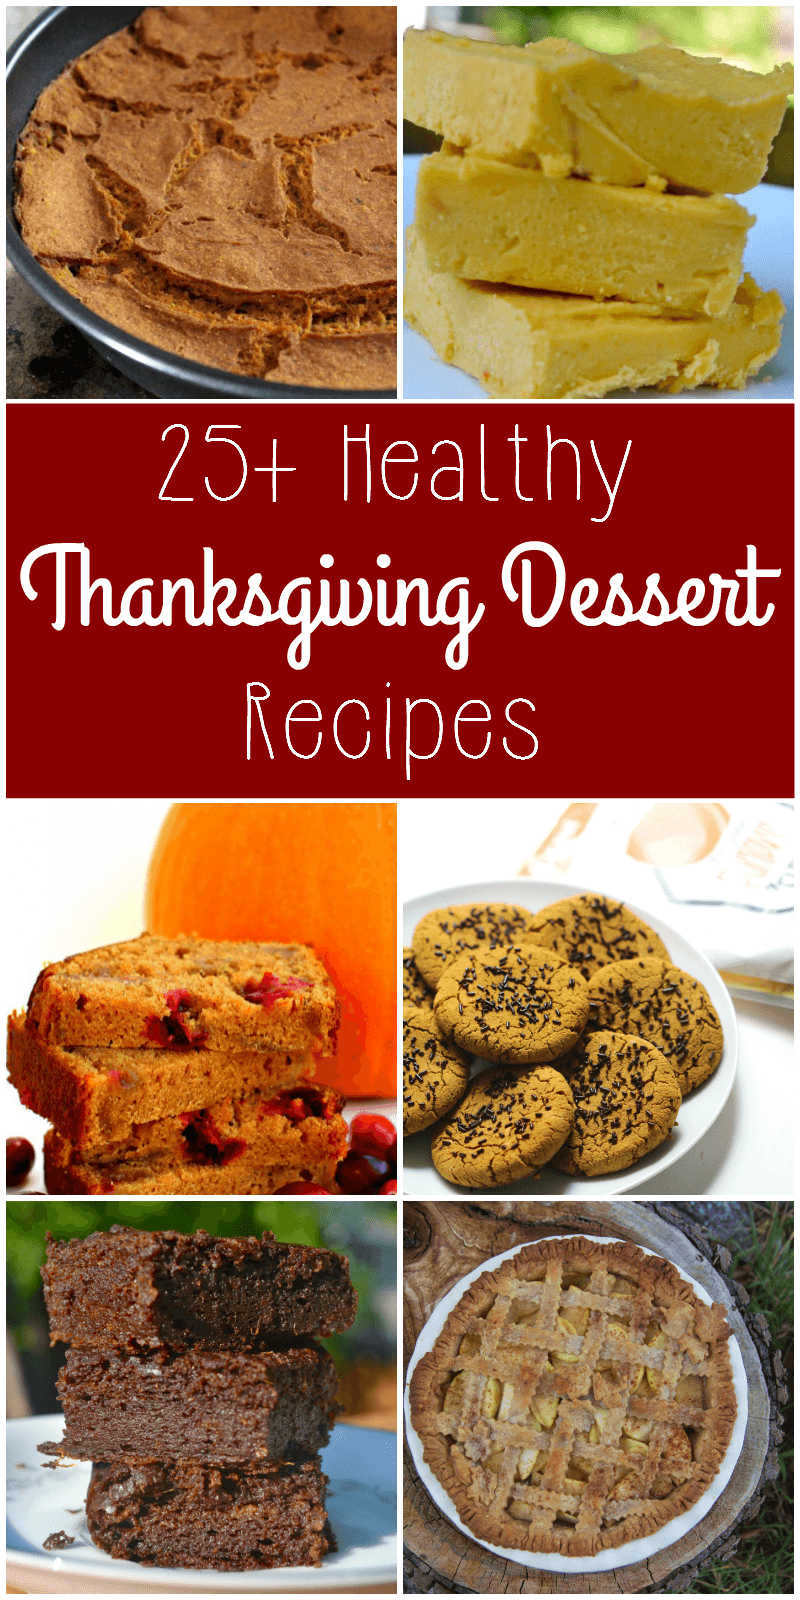 Looking for a healthy Thanksgiving dessert recipe? Many of these recipes are vegan, sugar-free, gluten-free, and/or paleo. Add some of these delicious desserts to your Thanksgiving menu this year!